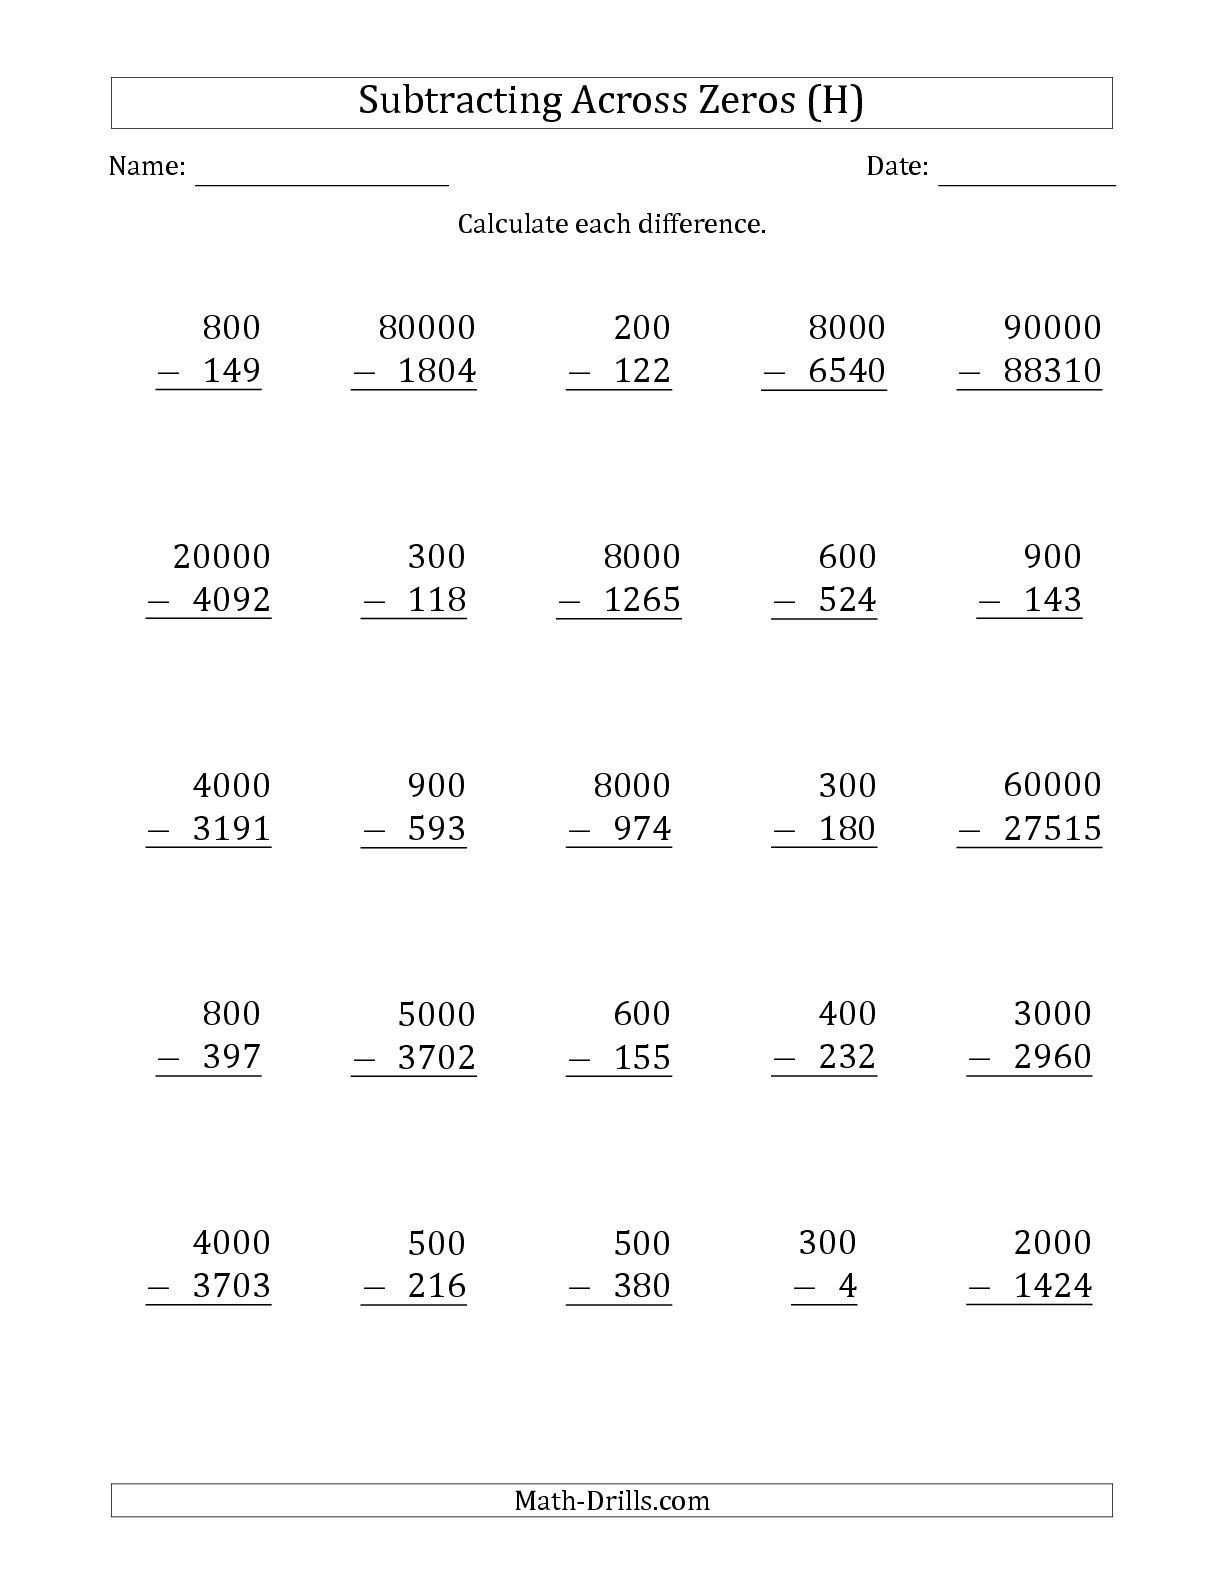 Subtracting Across Zeros Worksheet Pdf the Subtracting Across Zeros From Multiples Of 100 1000 and